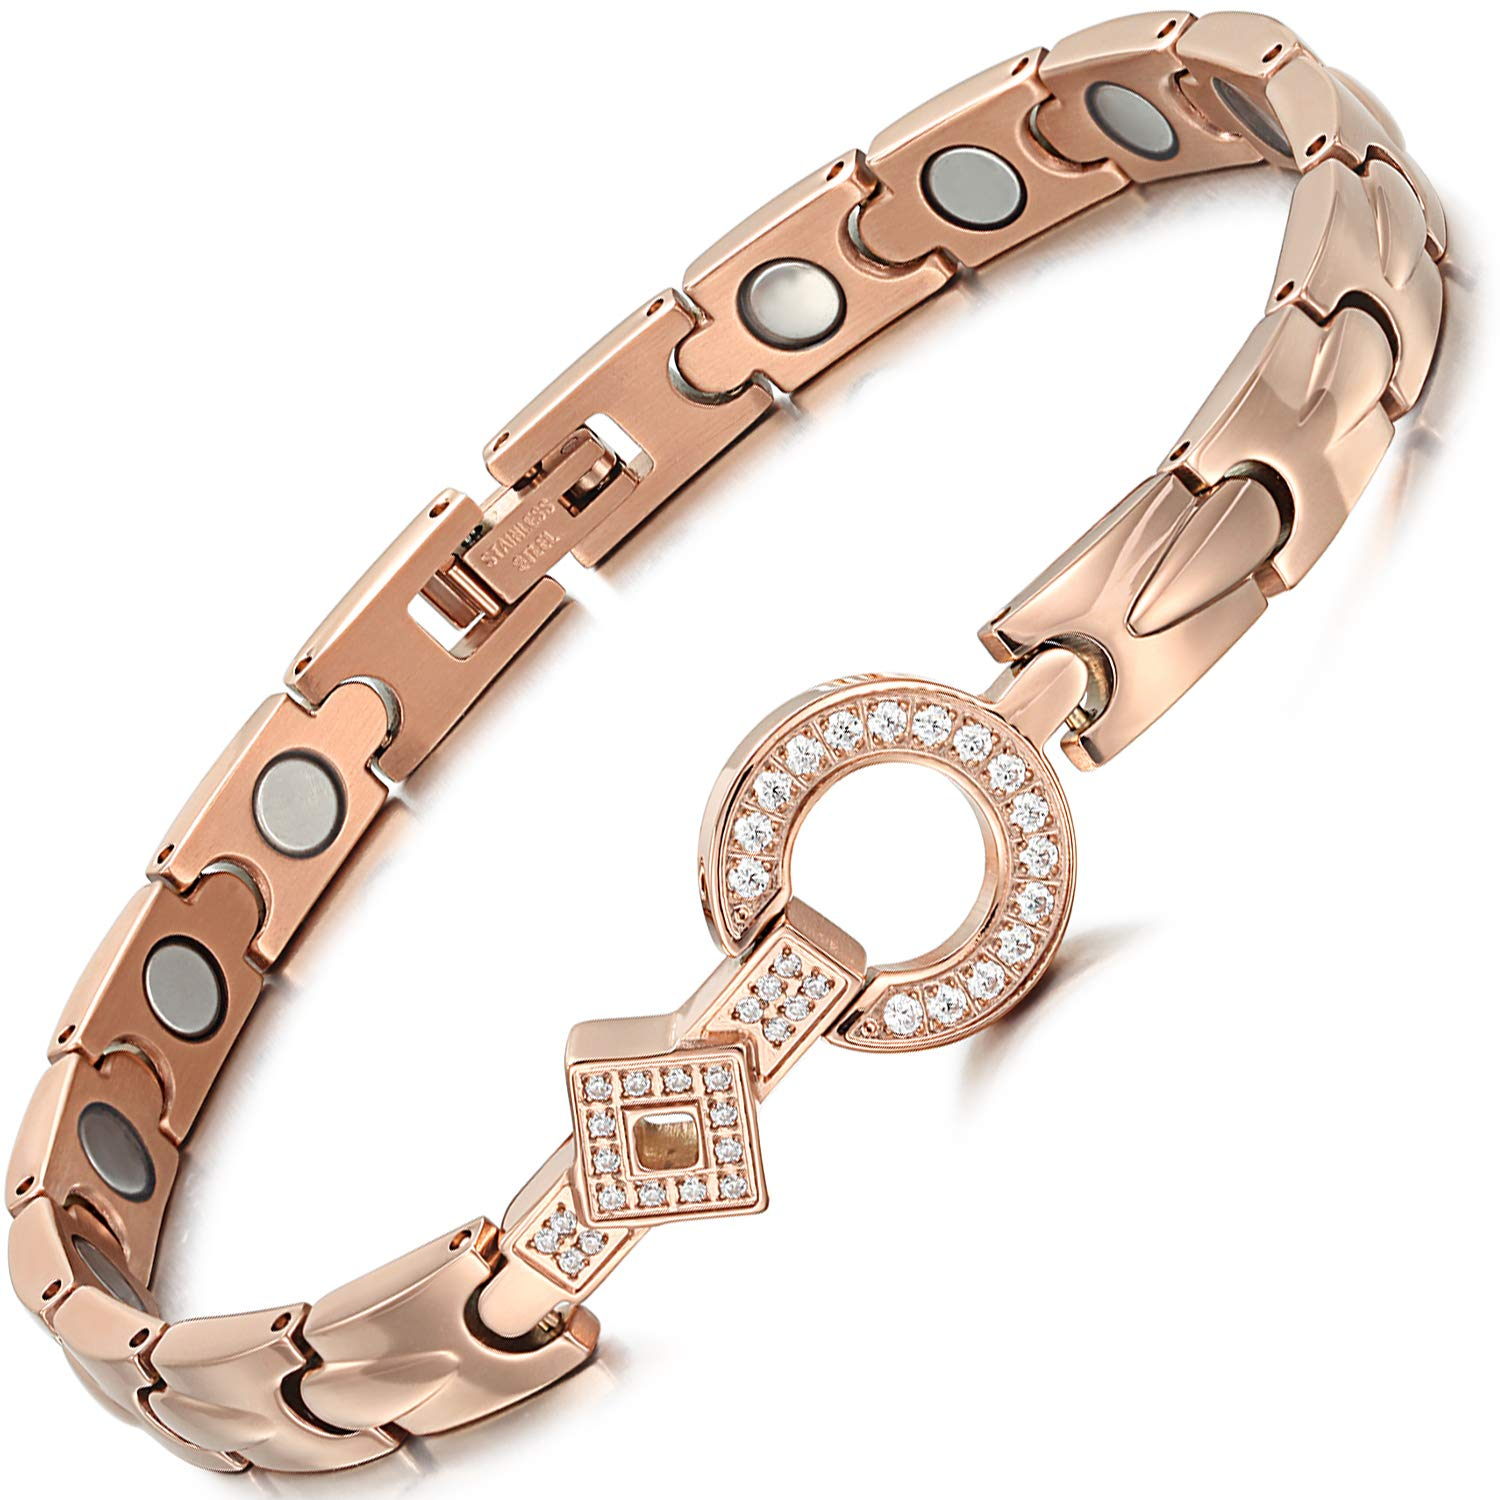 Elegant Titanium Steel Rhinestone Magnetic Therapy Bracelet Pain Relief for Arthritis and Carpal Tunnel,Adjustable with Free Link Removal Tool